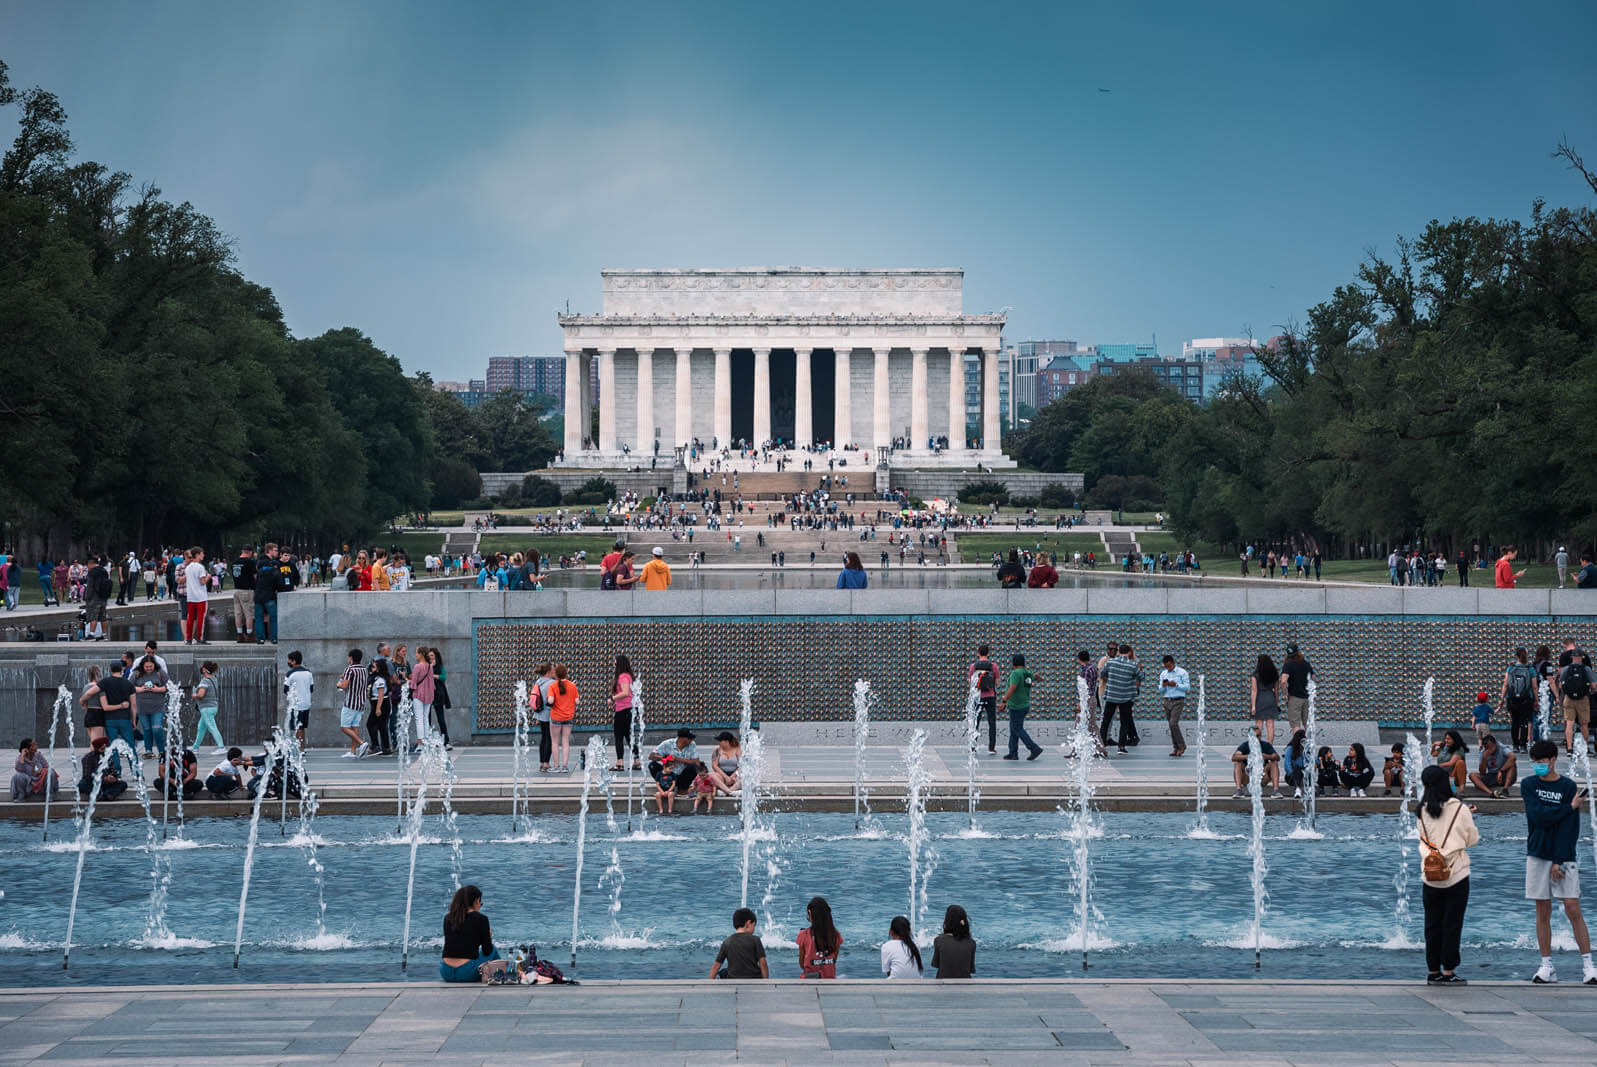 The Lincoln Memorial at the end of the National Mall in Washington DC